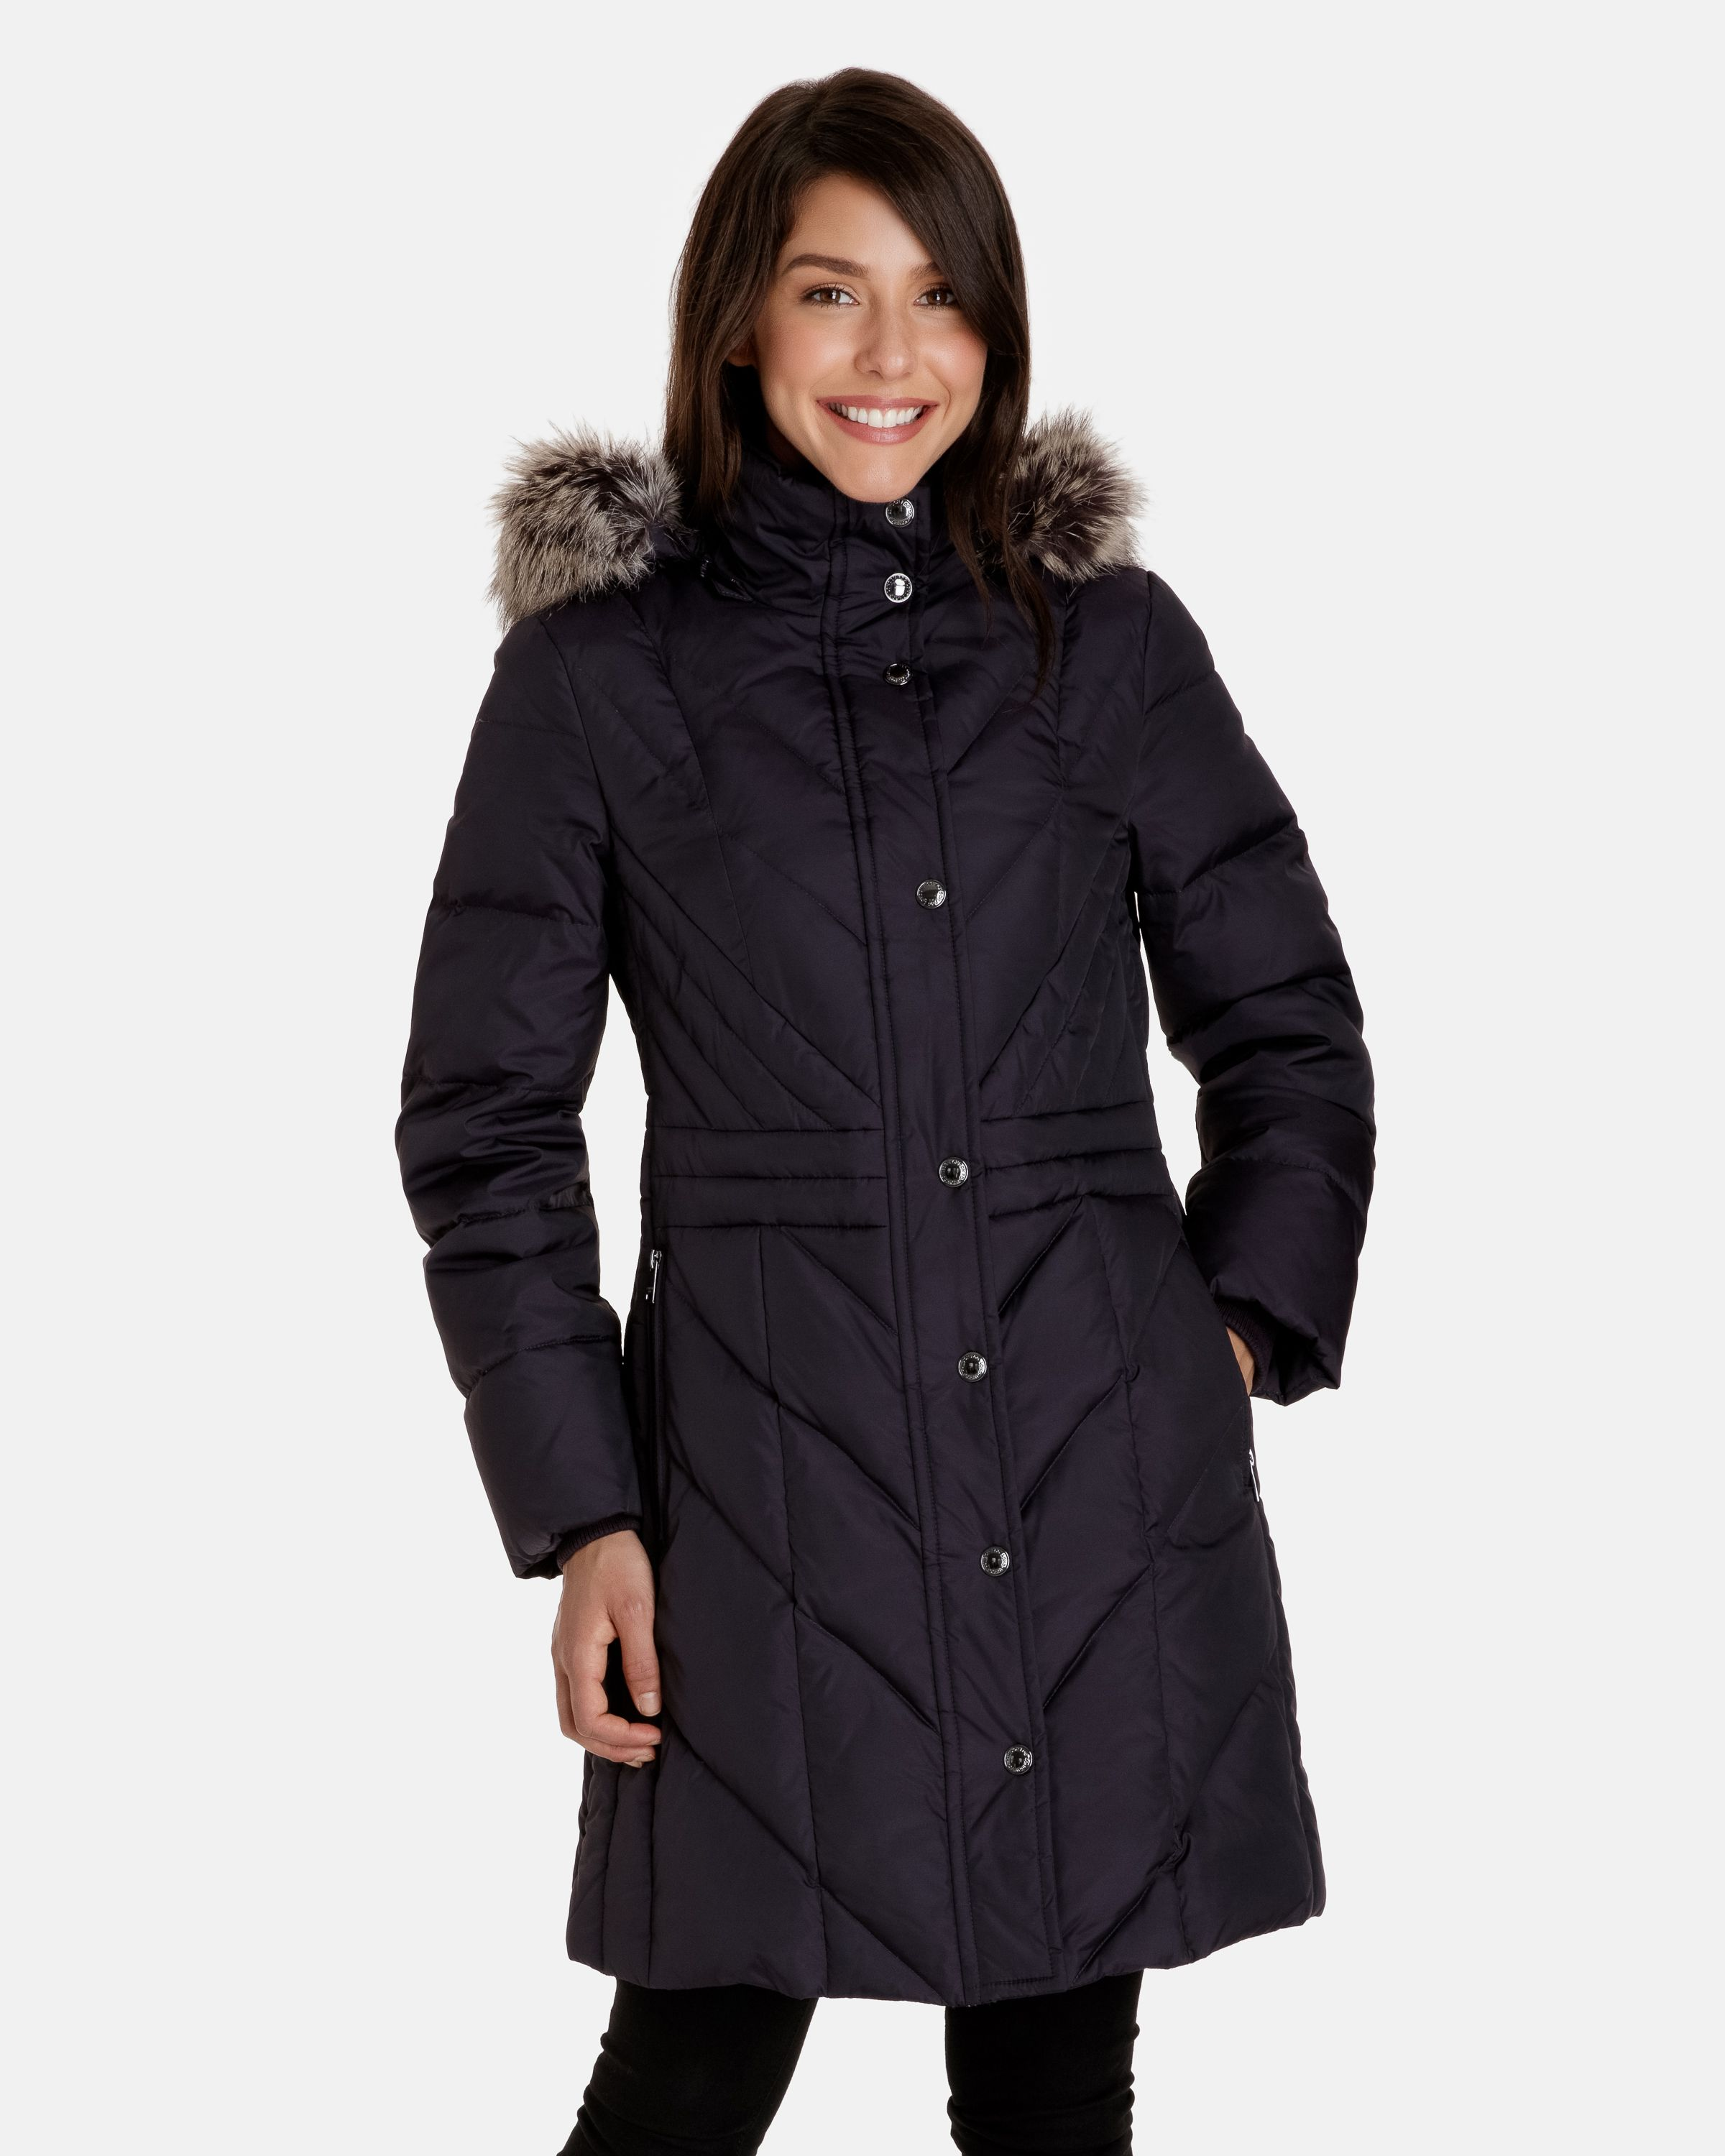 quilted warehouse womens bla women coat s mountain quilt gb seasons padded jacket